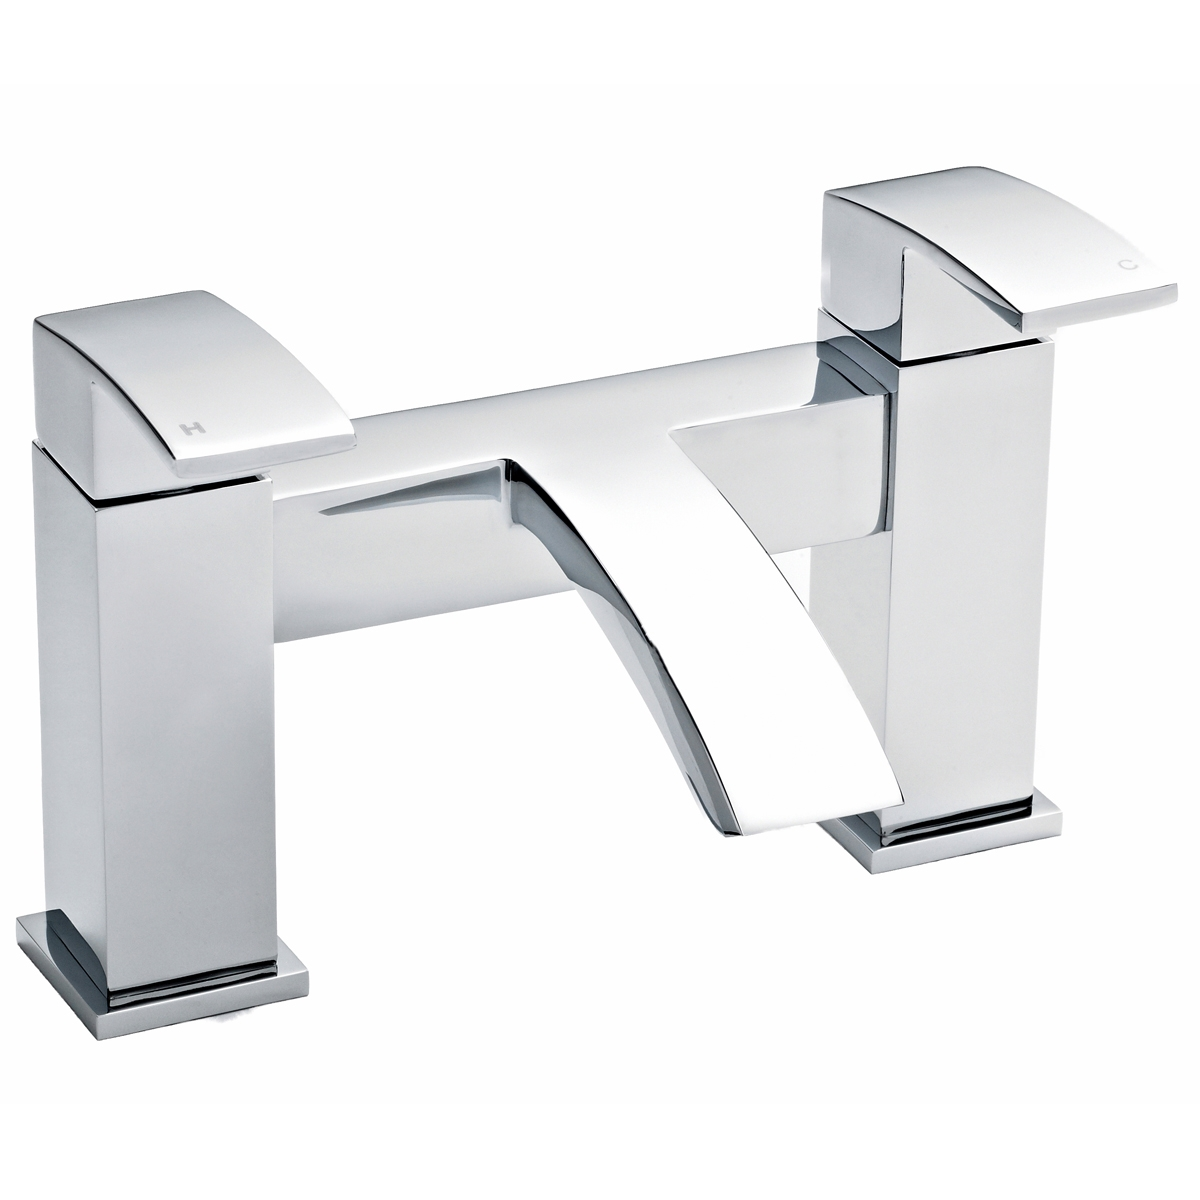 Ultra Vibe Mono Basin Mixer Tap and Bath Filler Tap Pillar Mounted, Chrome-2